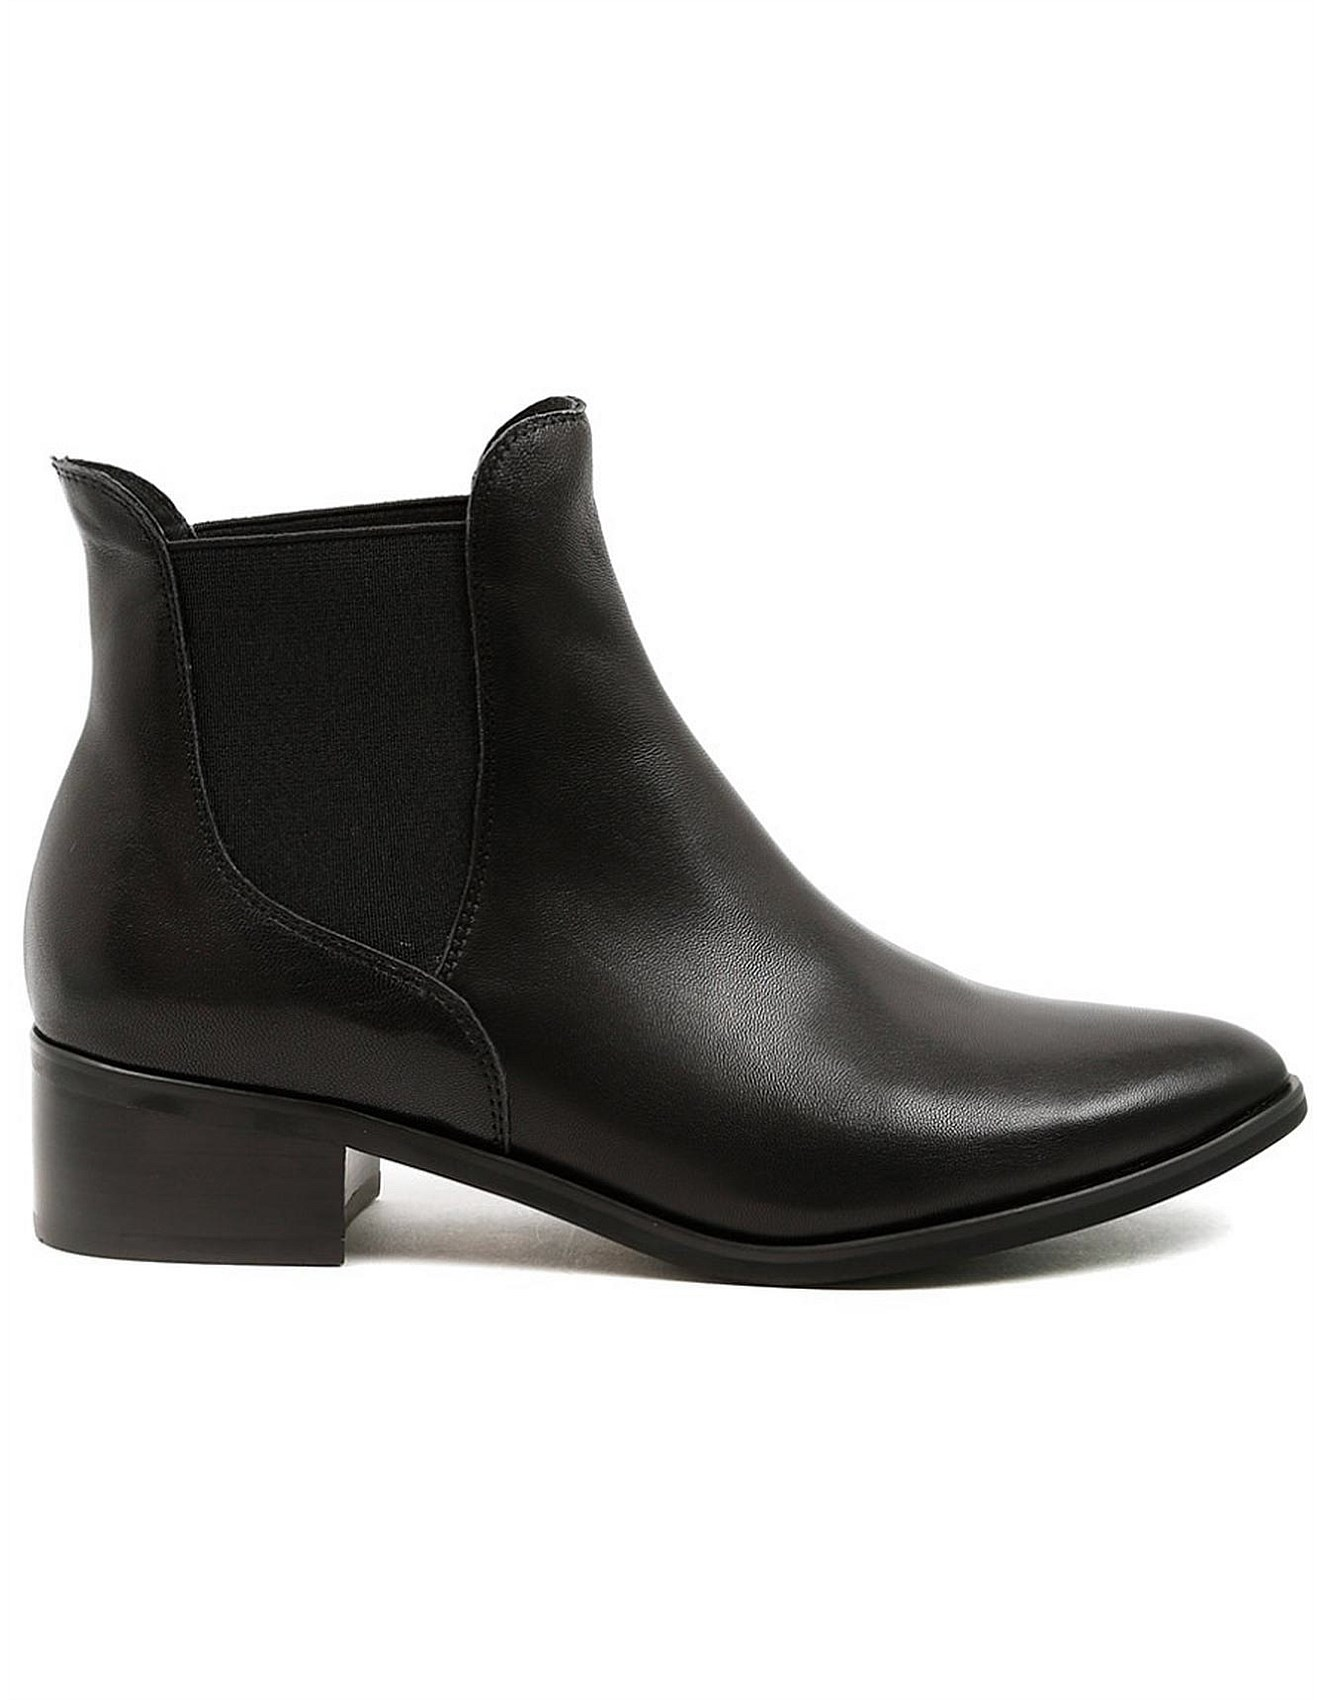 Midas - Pantha Black Leather Ankle Boots